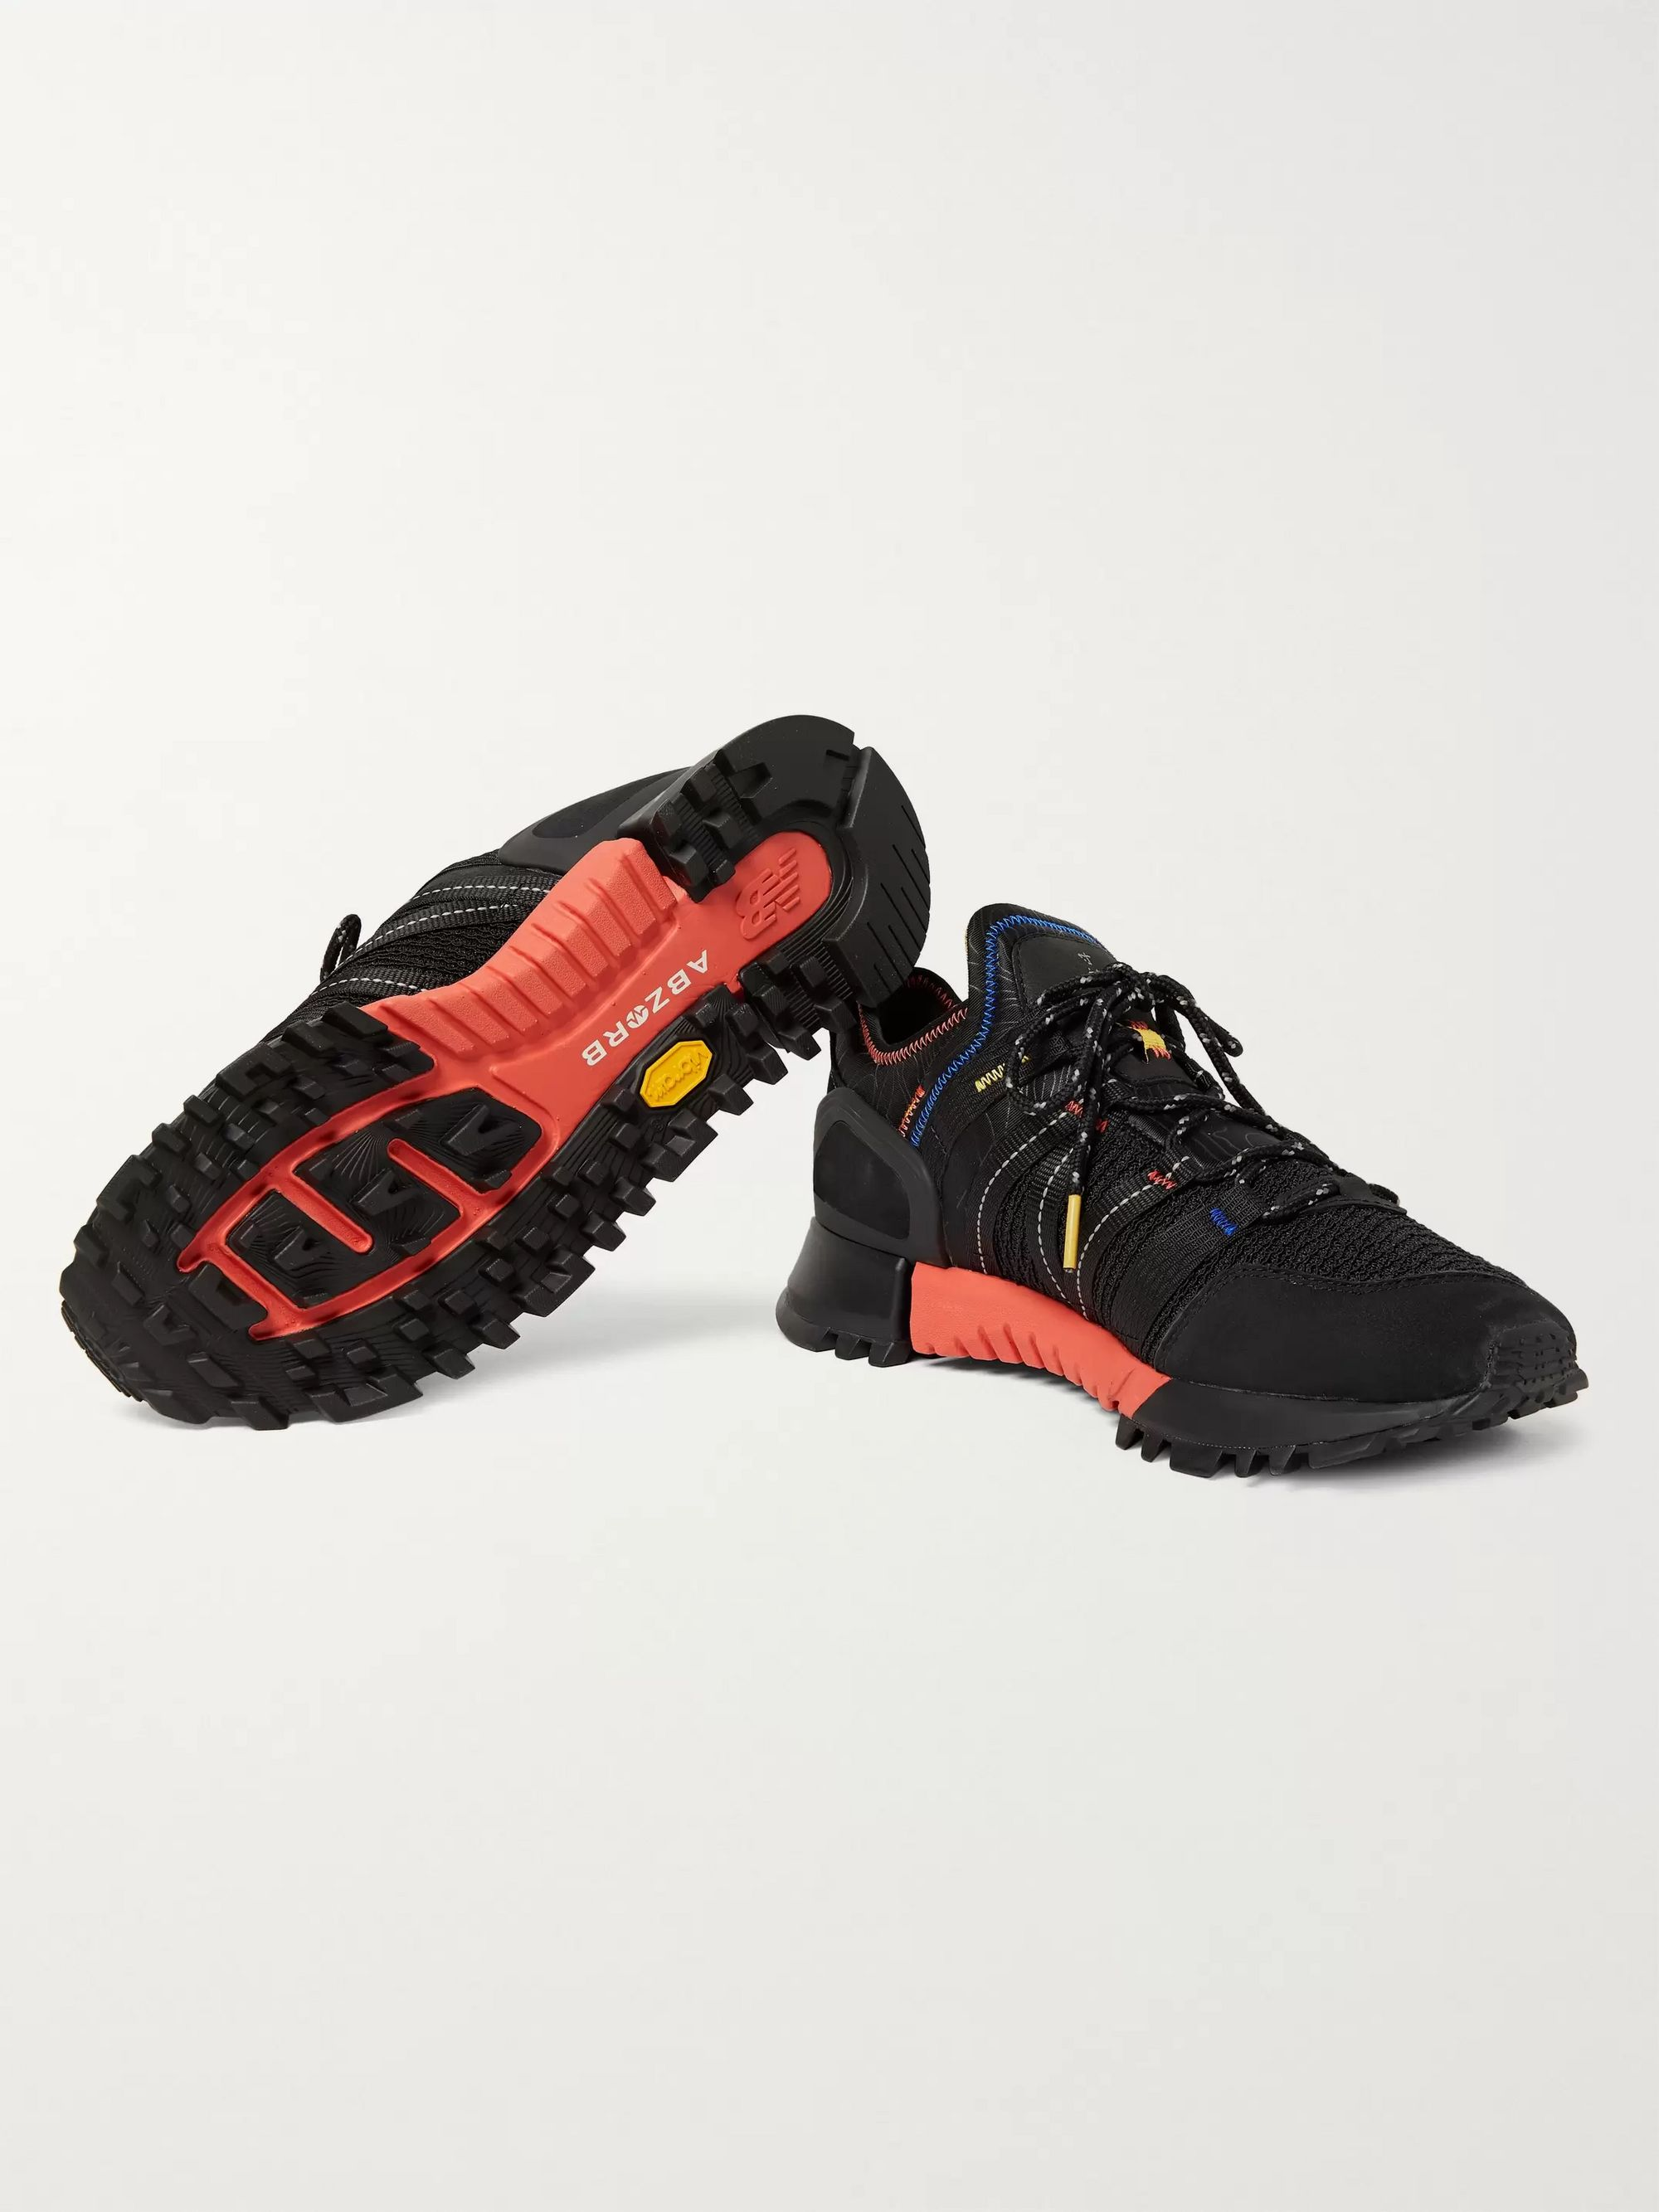 New Balance R_C4 Webbing and Nubuck-Trimmed CORDURA Tracefiber and Mesh Sneakers